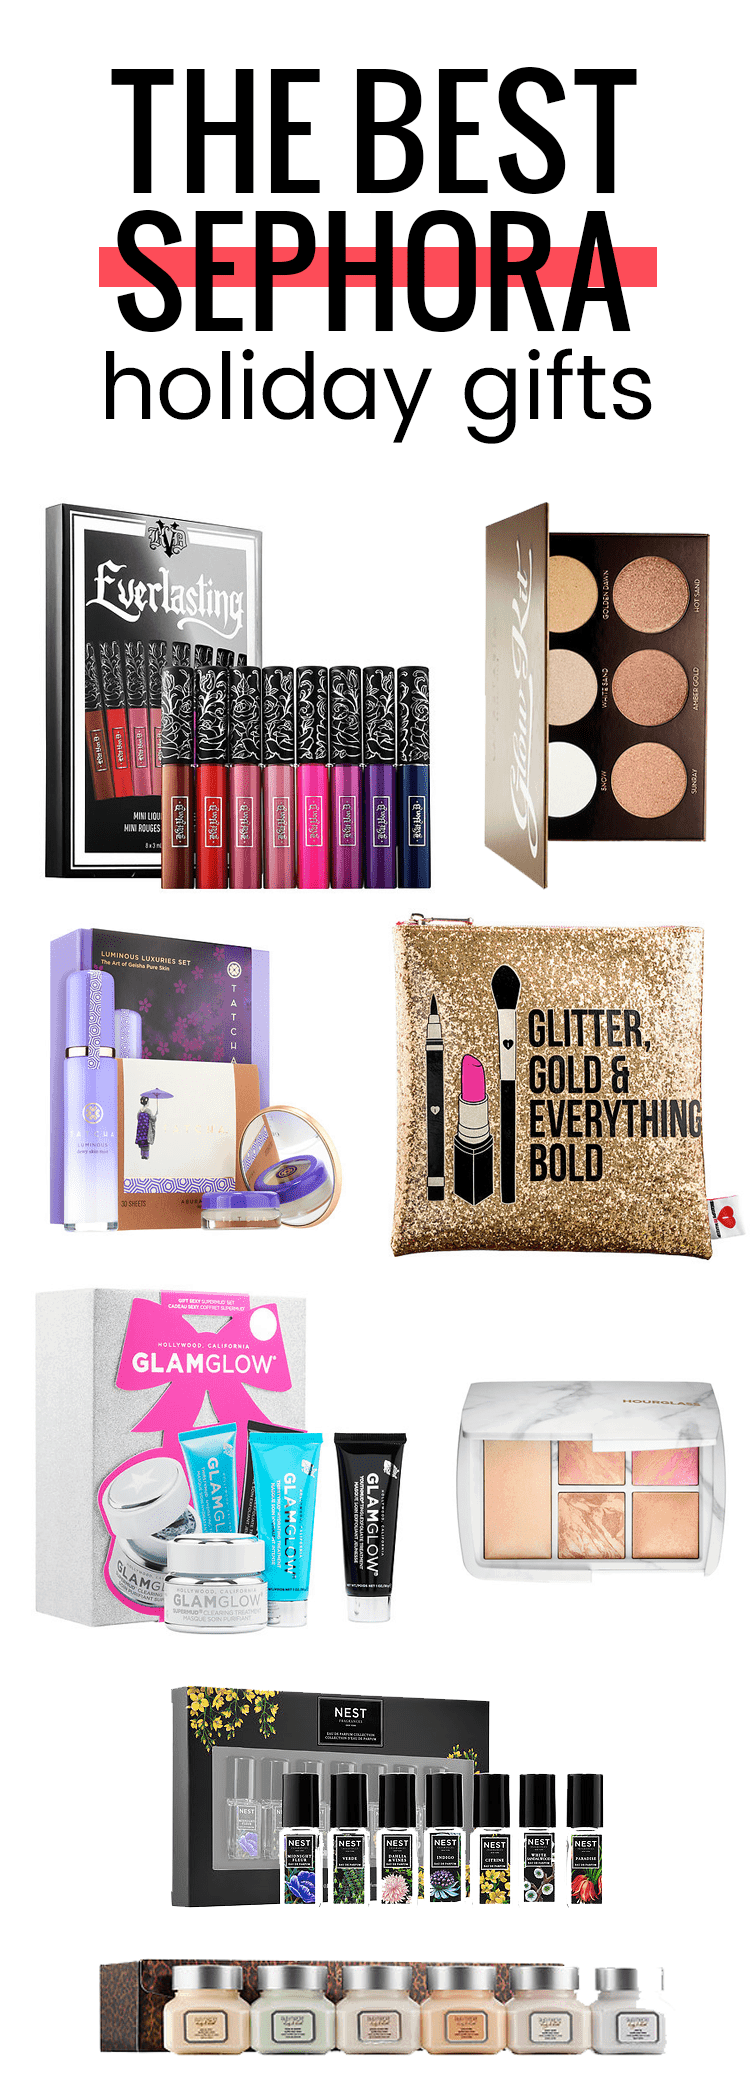 The best Sephora holiday gifts for this season! Perfect for the beauty lover in your life